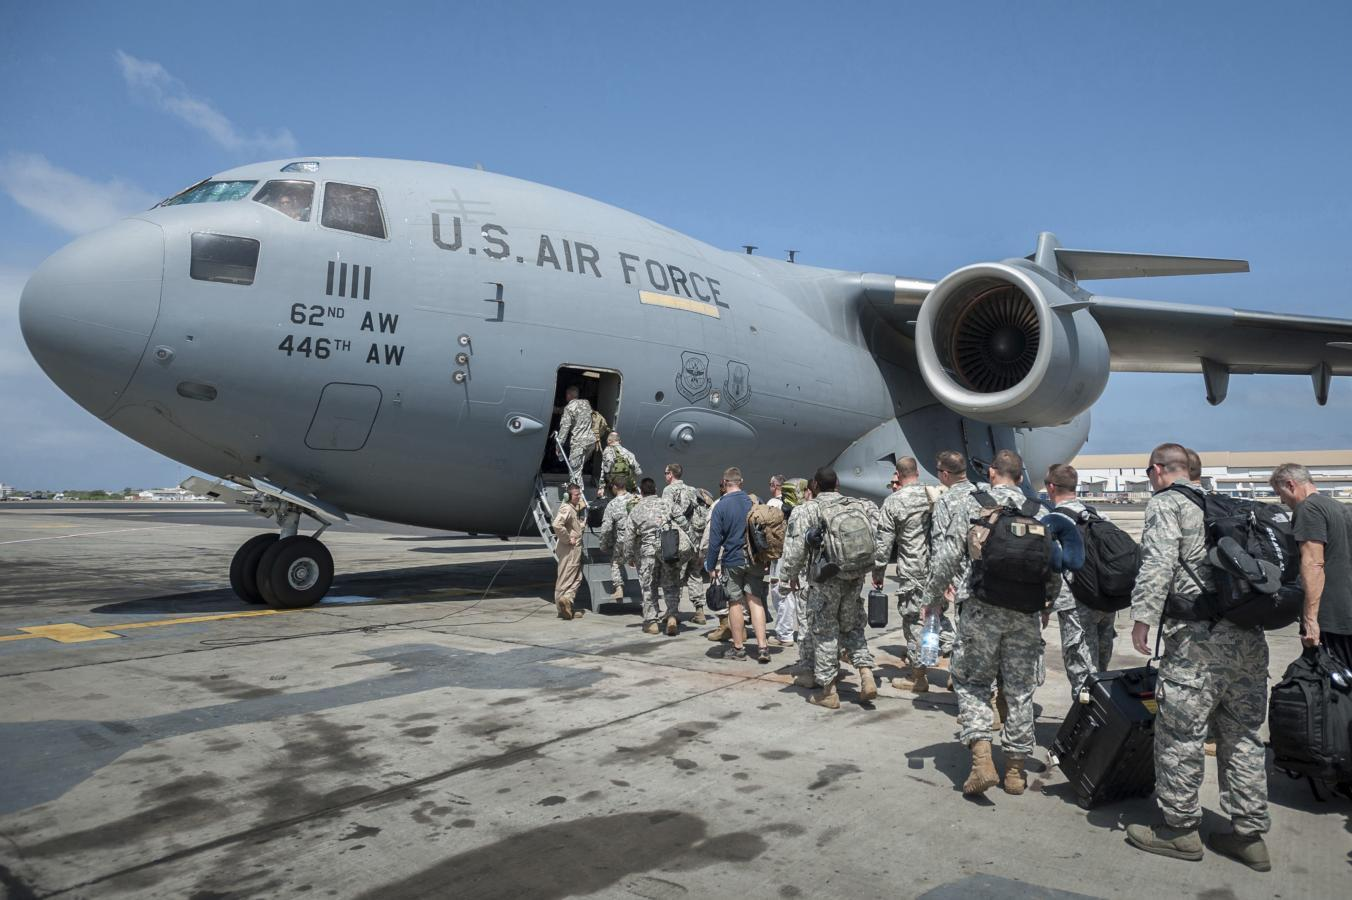 Using military and new protocols, U.S. ramps up Ebola response